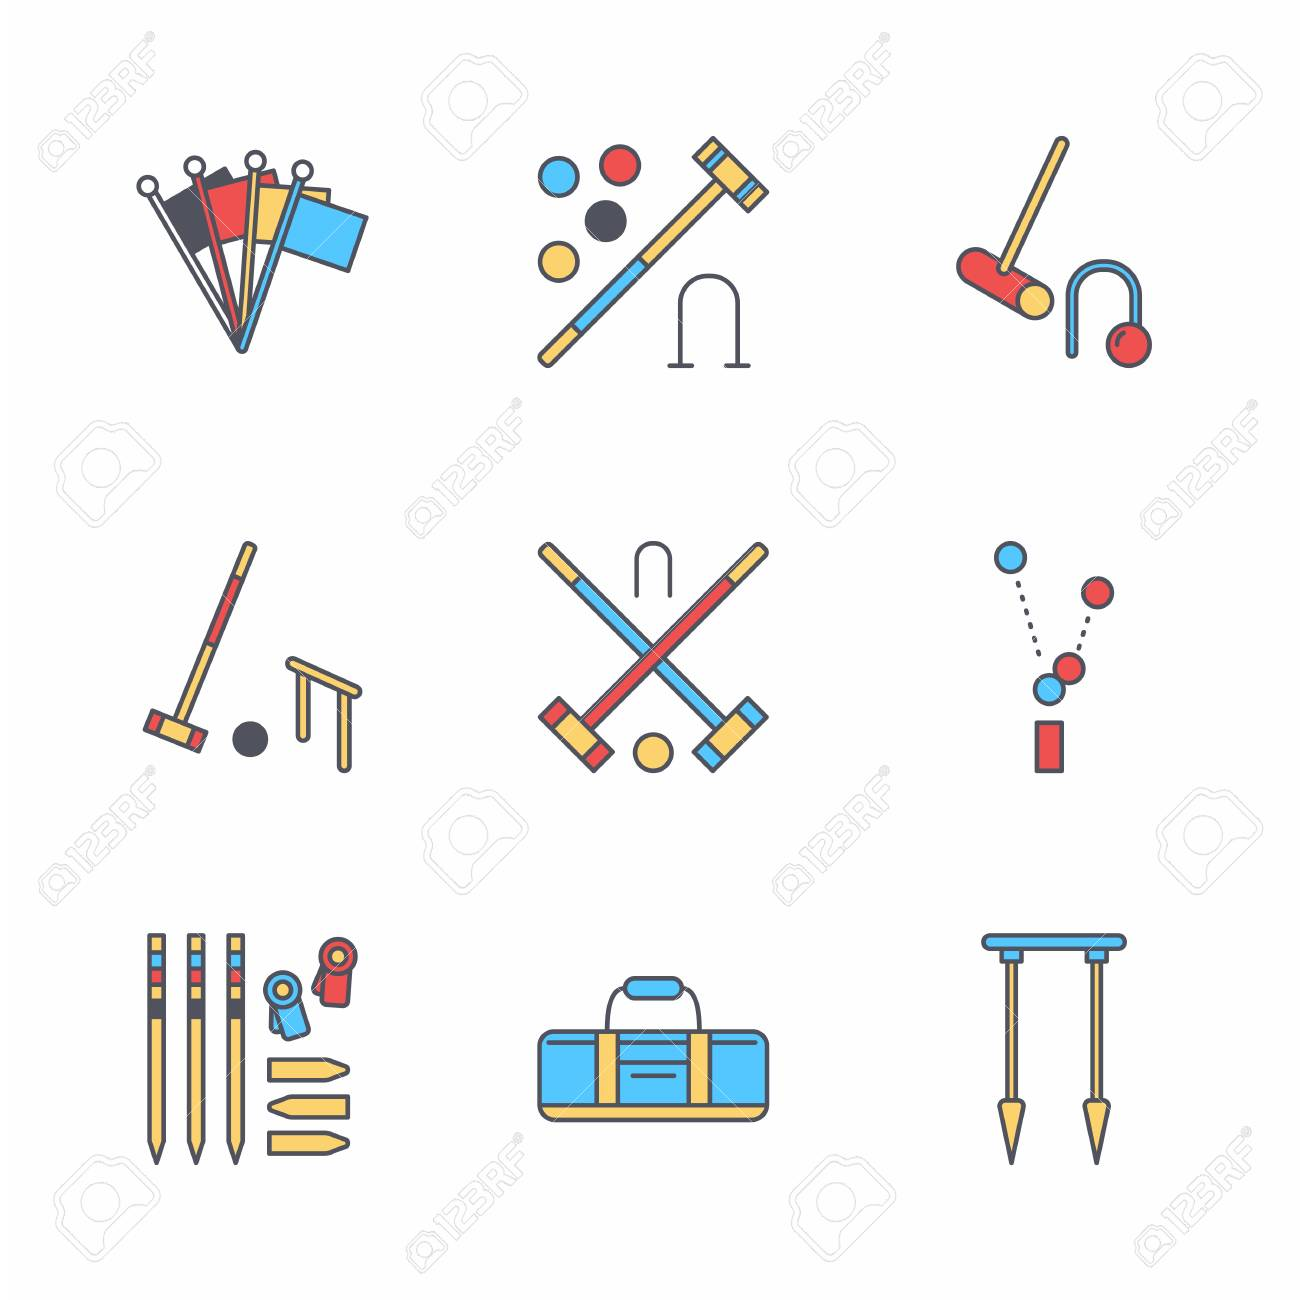 Croquet sport game vector line icons royalty free cliparts croquet sport game vector line icons stock vector 72319005 pooptronica Image collections